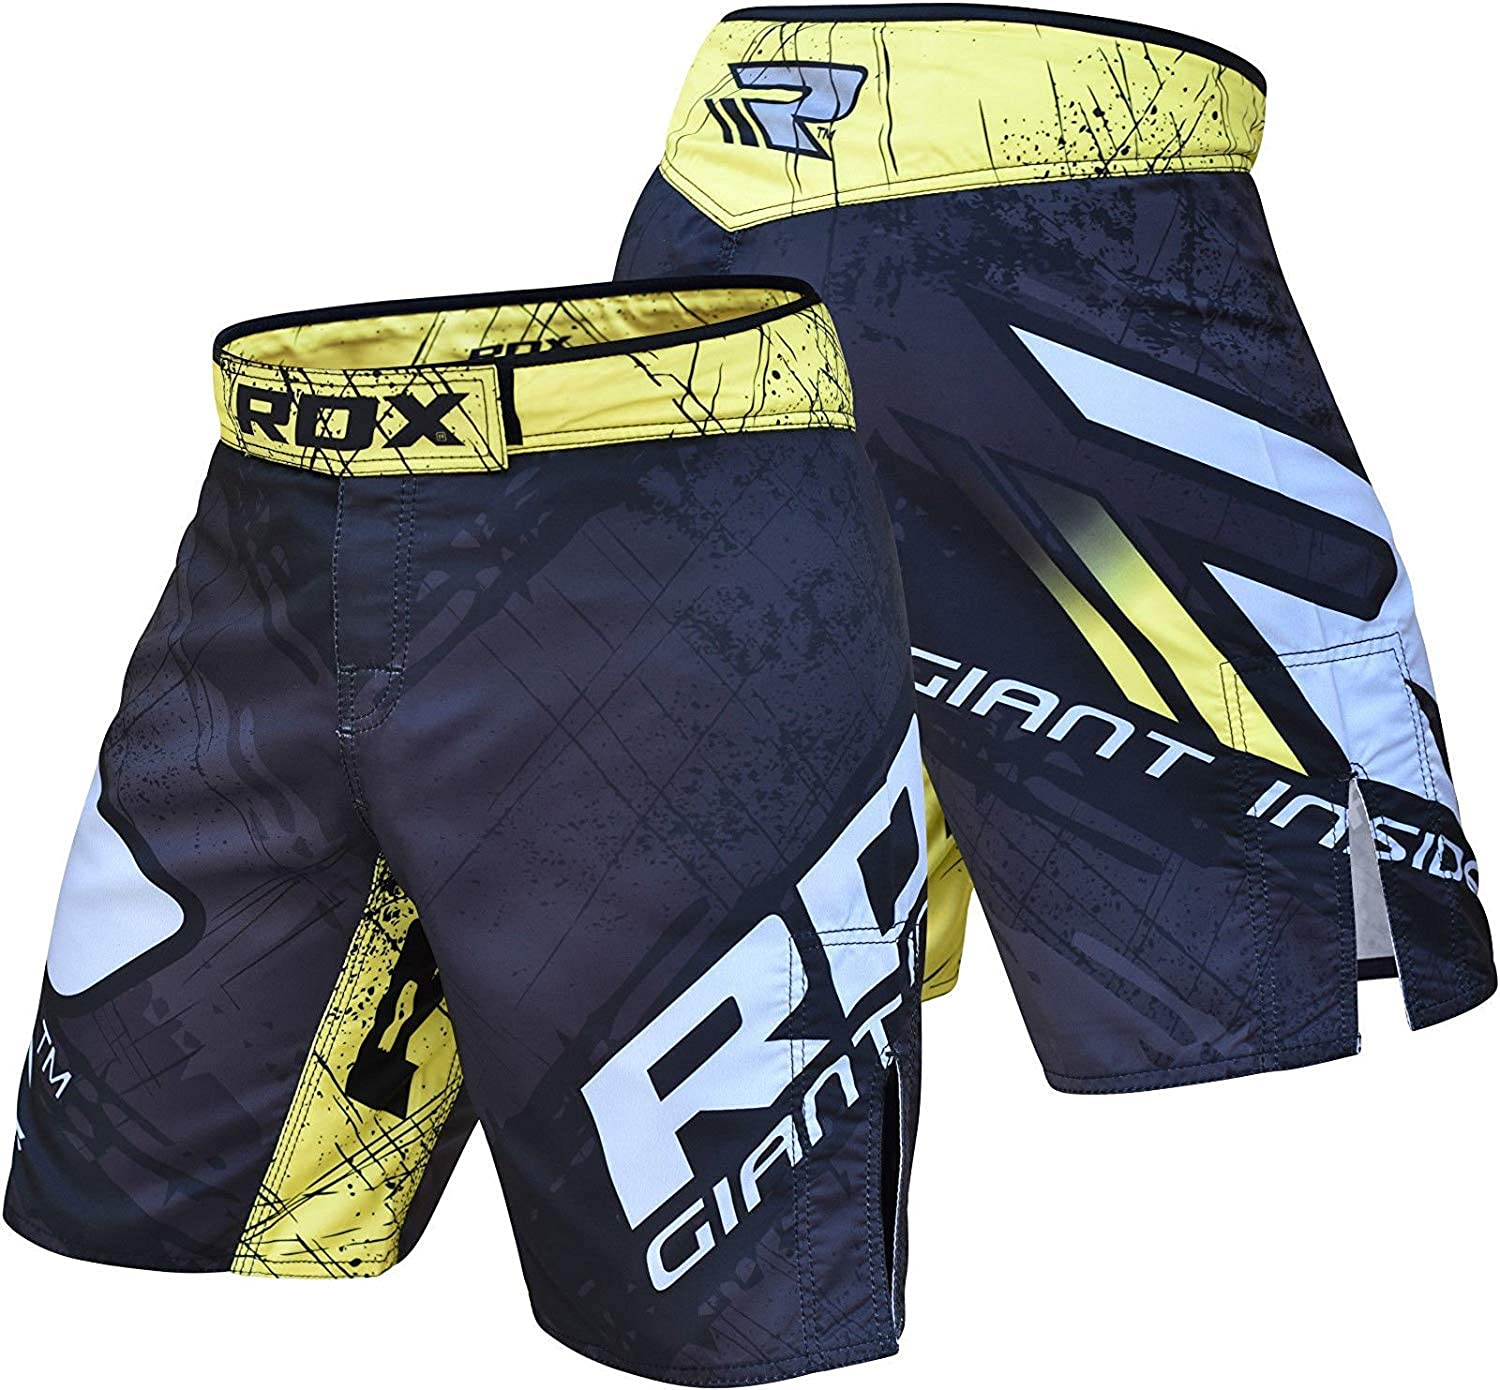 RDX MMA Shorts for Grappling Martial Arts Training Cage Fight Sparring Breathable Fighting Trunks for Kickboxing Combat and Gym Exercises Boxing